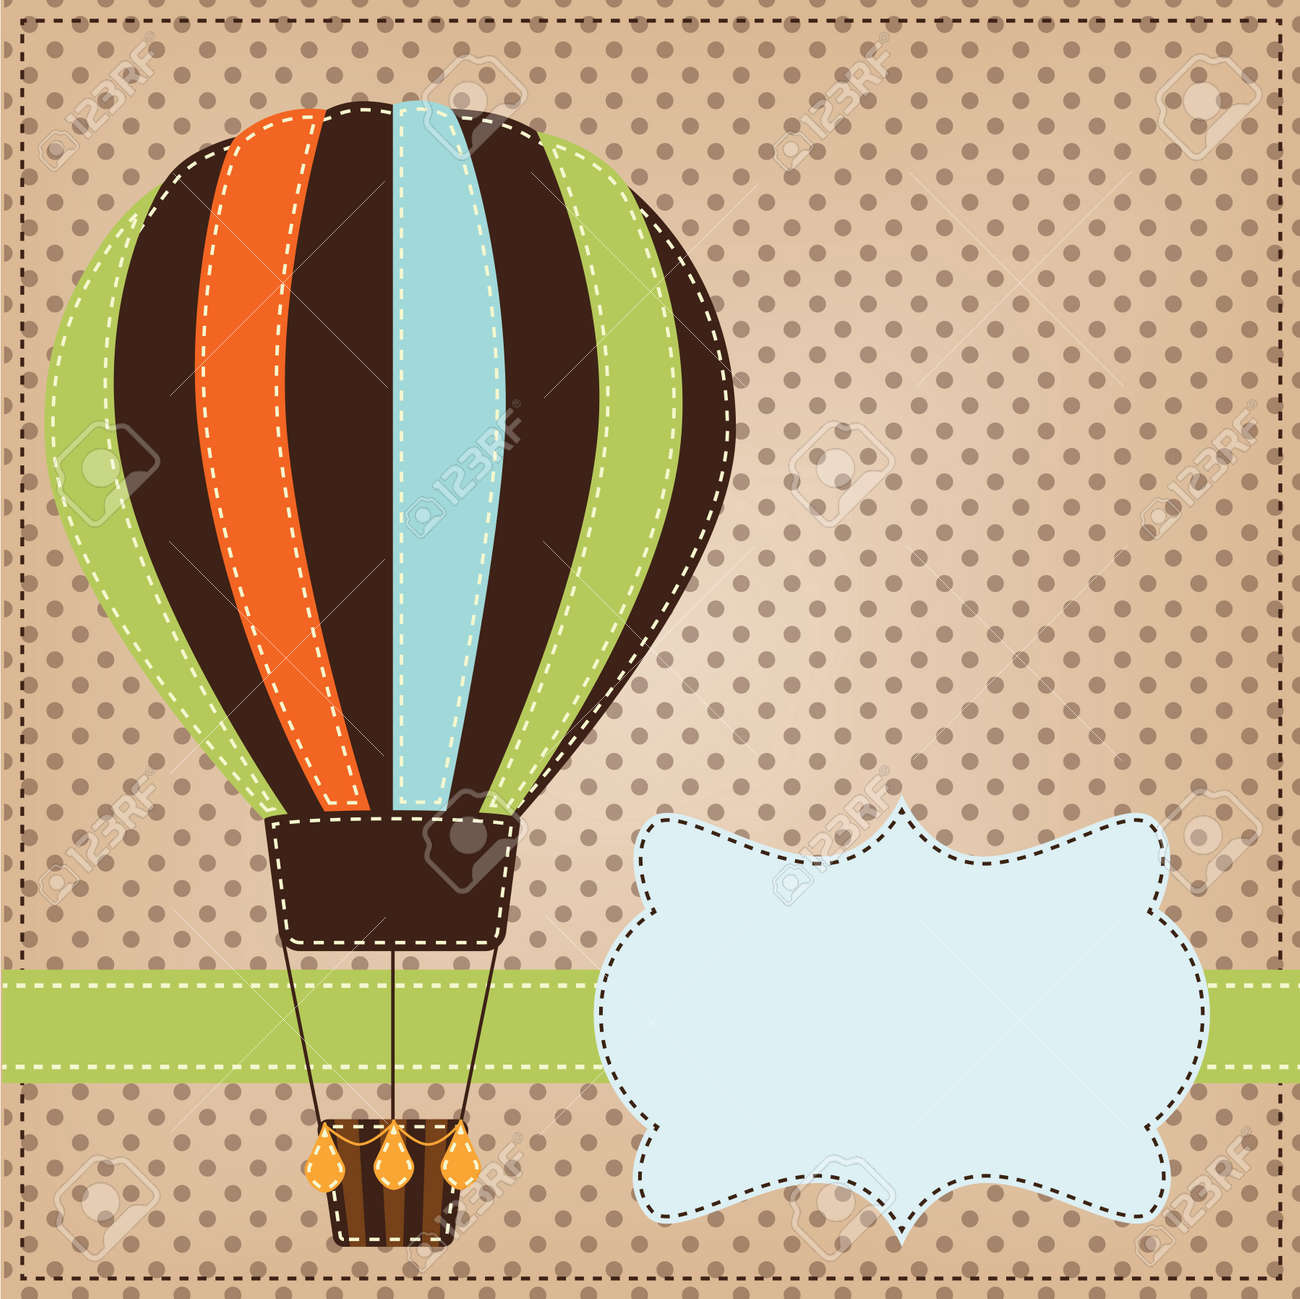 Vintage Or Retro Hot Air Balloon On Polka Dot Background With